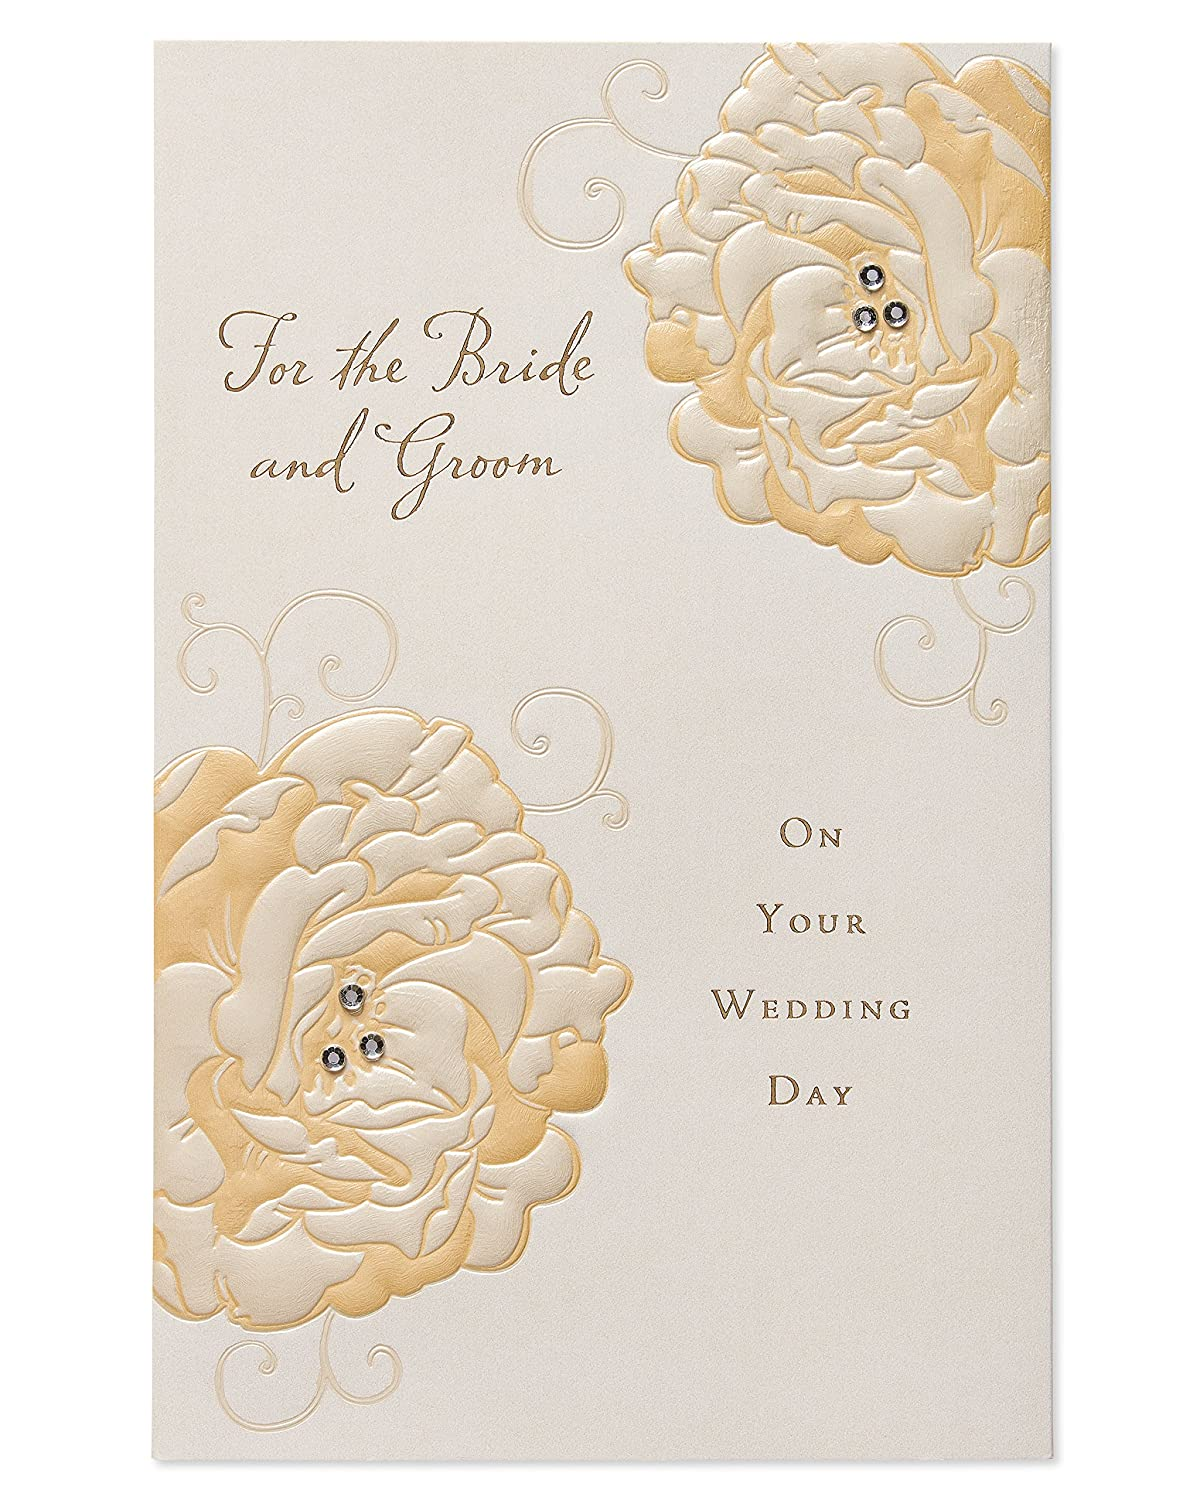 American Greetings Great Couple Wedding Card with Rhinestone 5986767